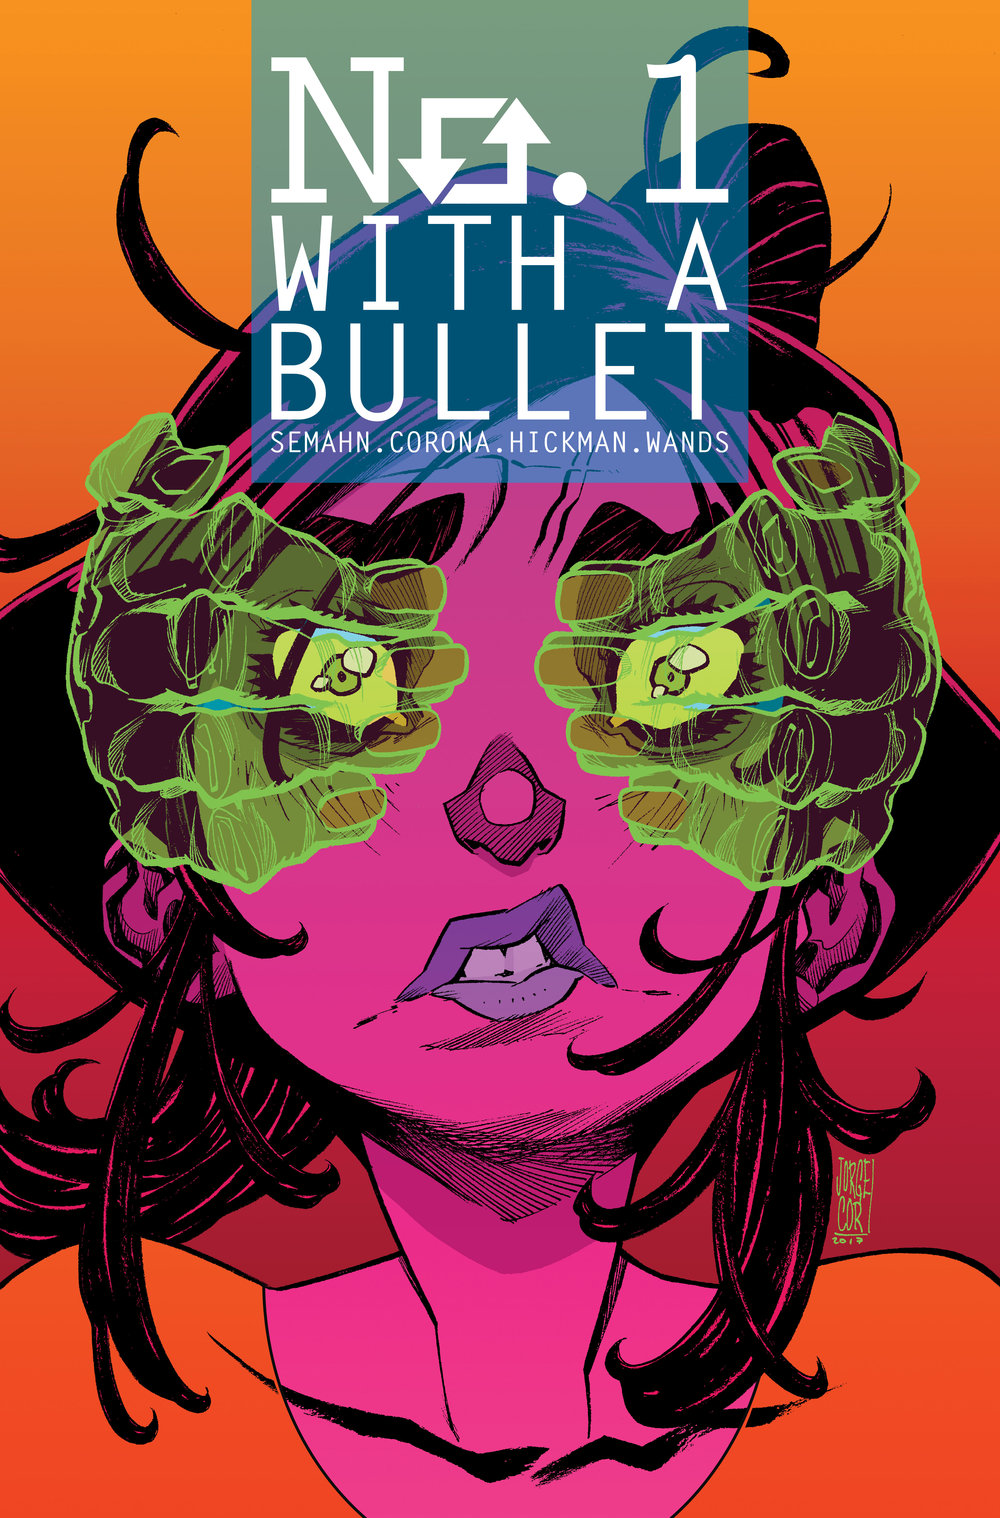 CLICK THROUGH FOR NO. 1 WITH A BULLET PRELUDE & ISSUE 01 ( IMAGE+ MAGAZINE AUGUST 2017 / ISSUE 01 NOVEMBER 2017 ) -- ISSUE #3 COMING SOON FROM  IMAGE COMICS  ( JANUARY 03, 2018 )